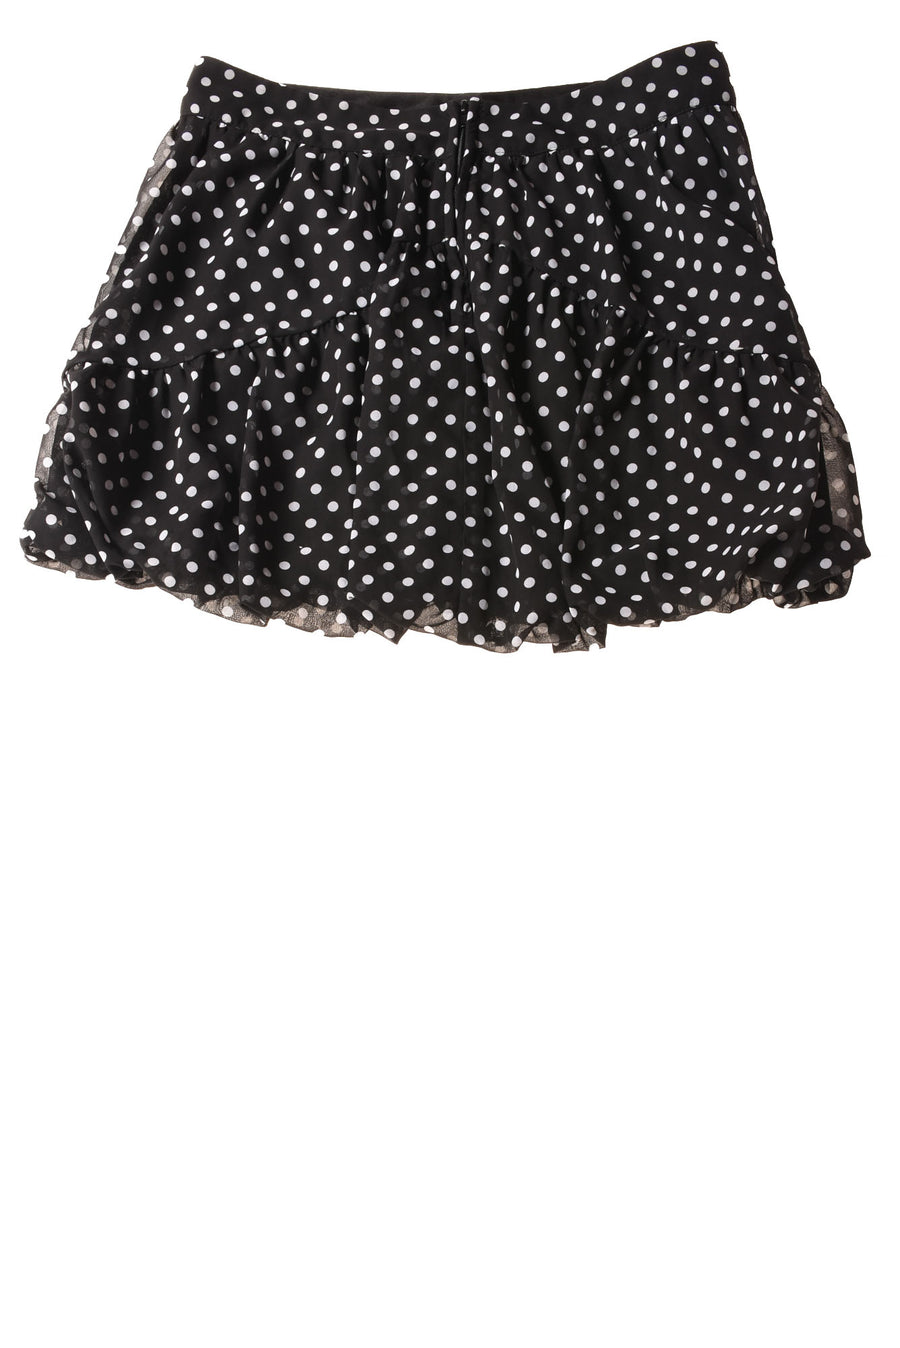 USED I.N.Girl Girl's Skirt 16 Black & White